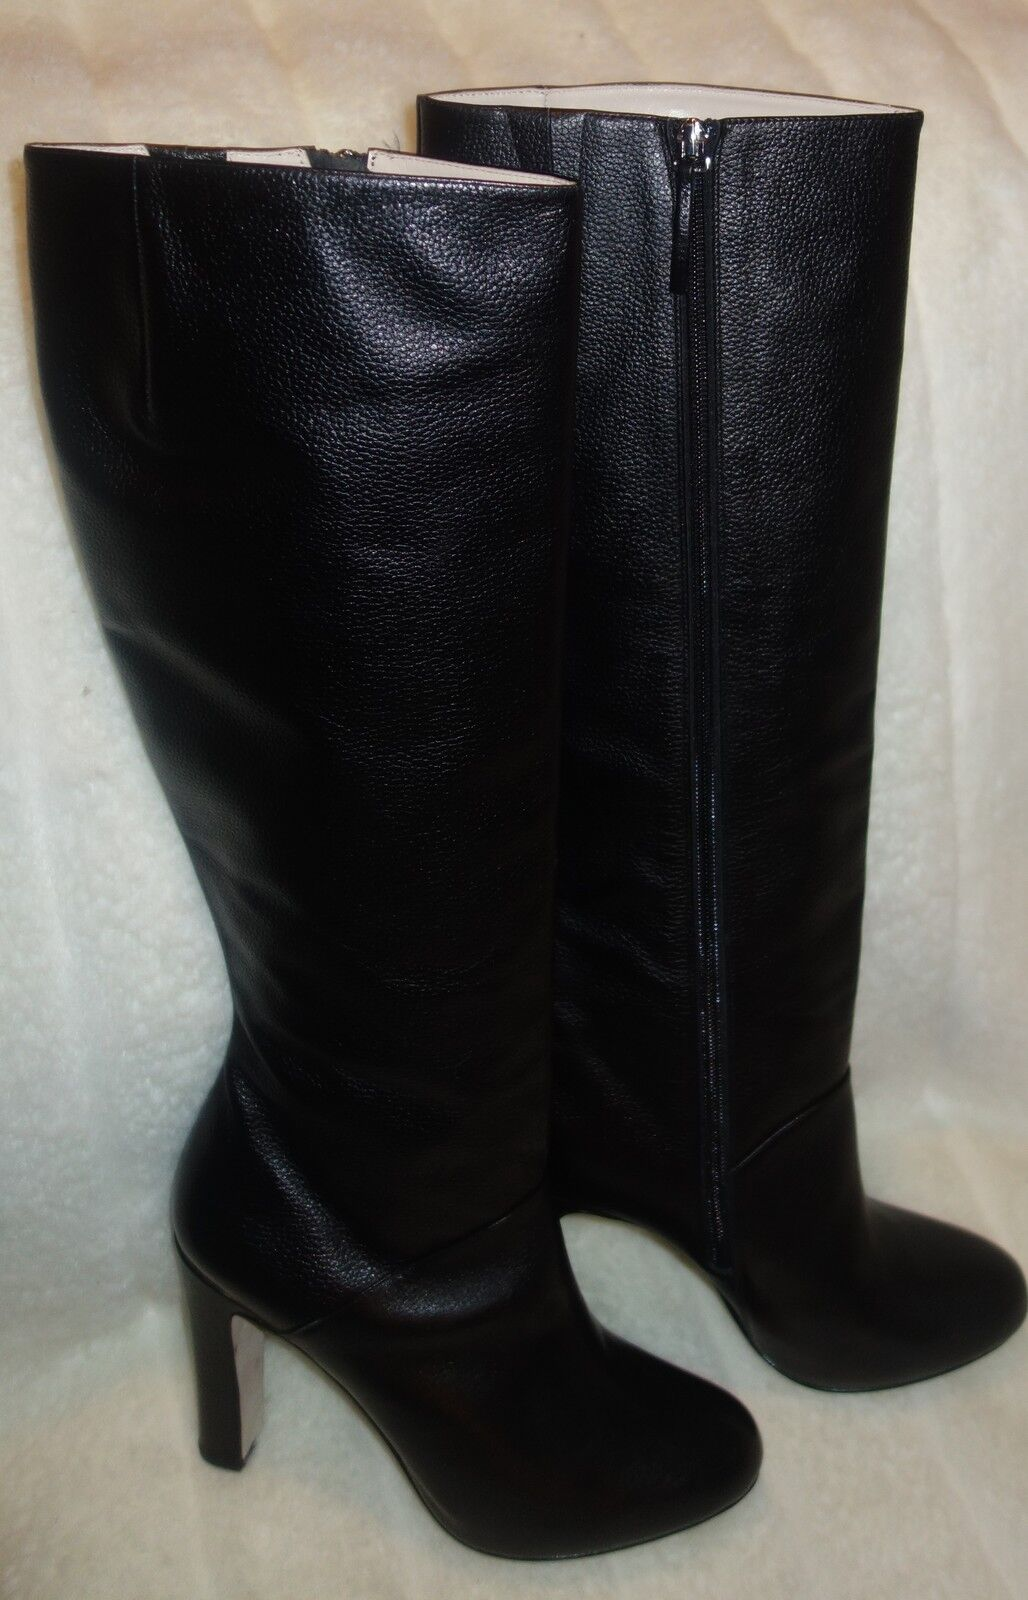 Lafenice venezia Black Leather Boots Knee High sz 8 new